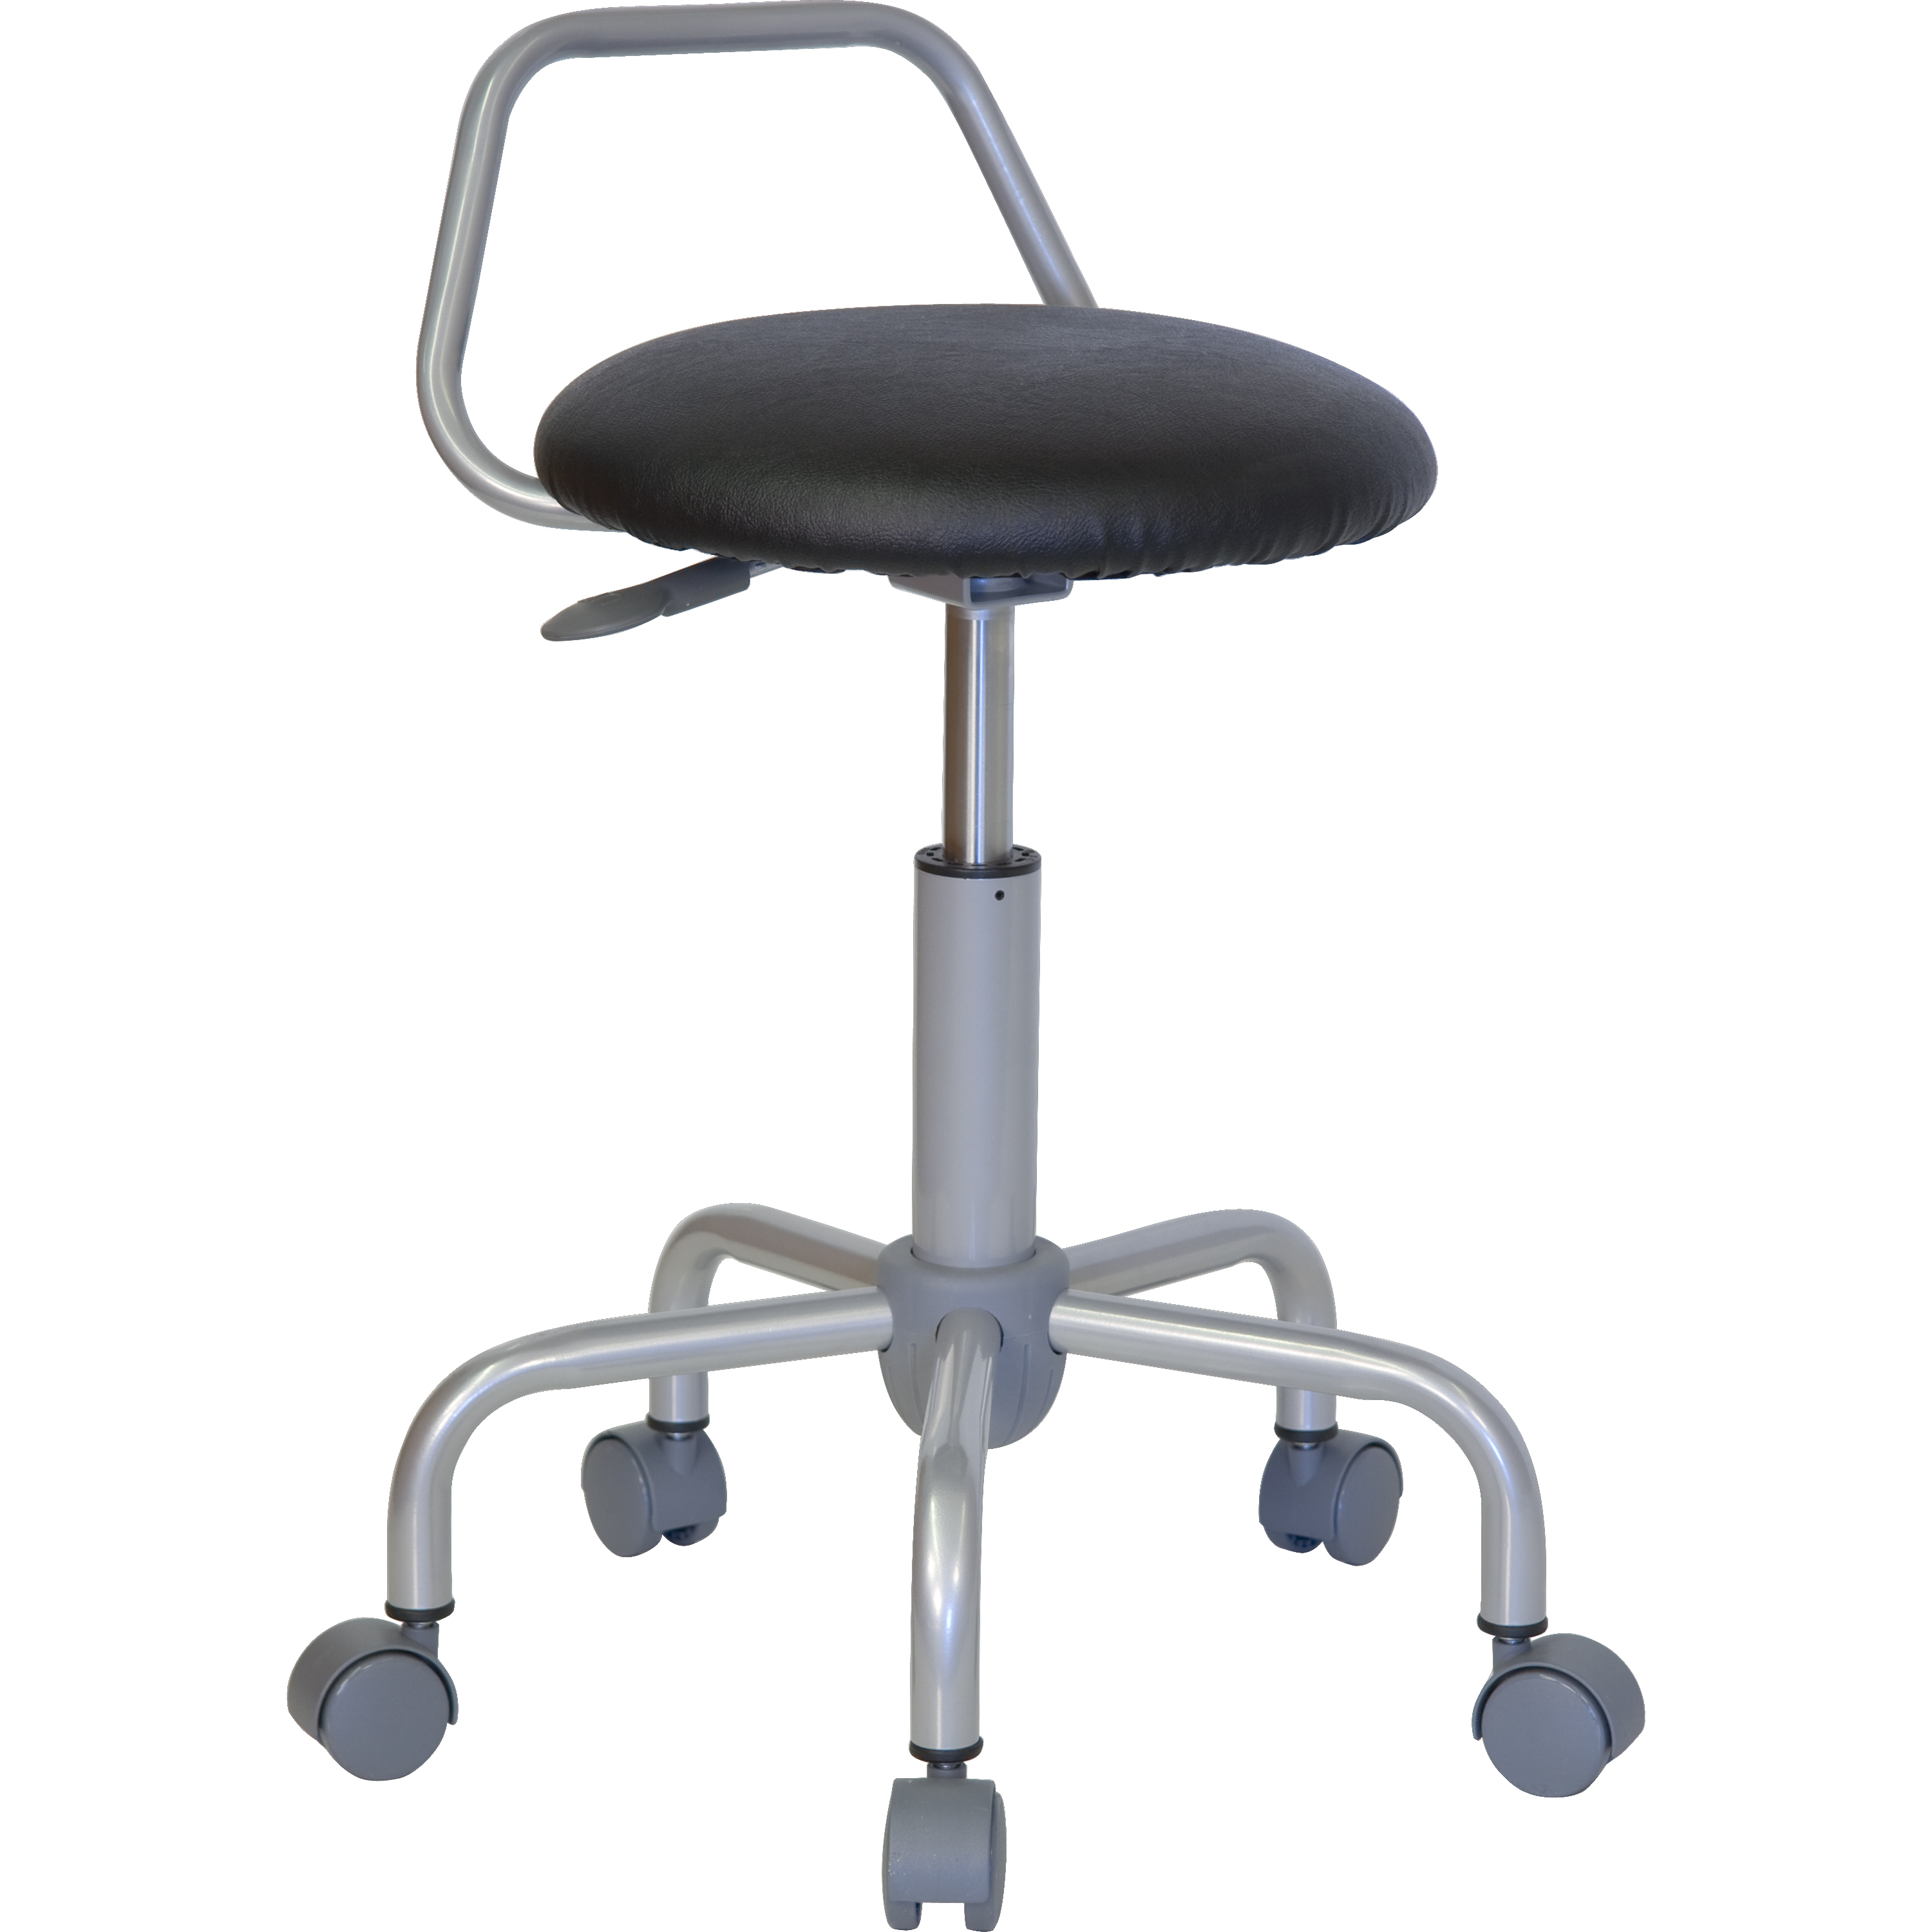 Backless Ergonomic Chair Viewing Gallery : wlst08ggaergonomicstoolwlst08gg <strong>Office</strong> Desk On Wheels from galleryhip.com size 3000 x 3000 jpeg 1263kB